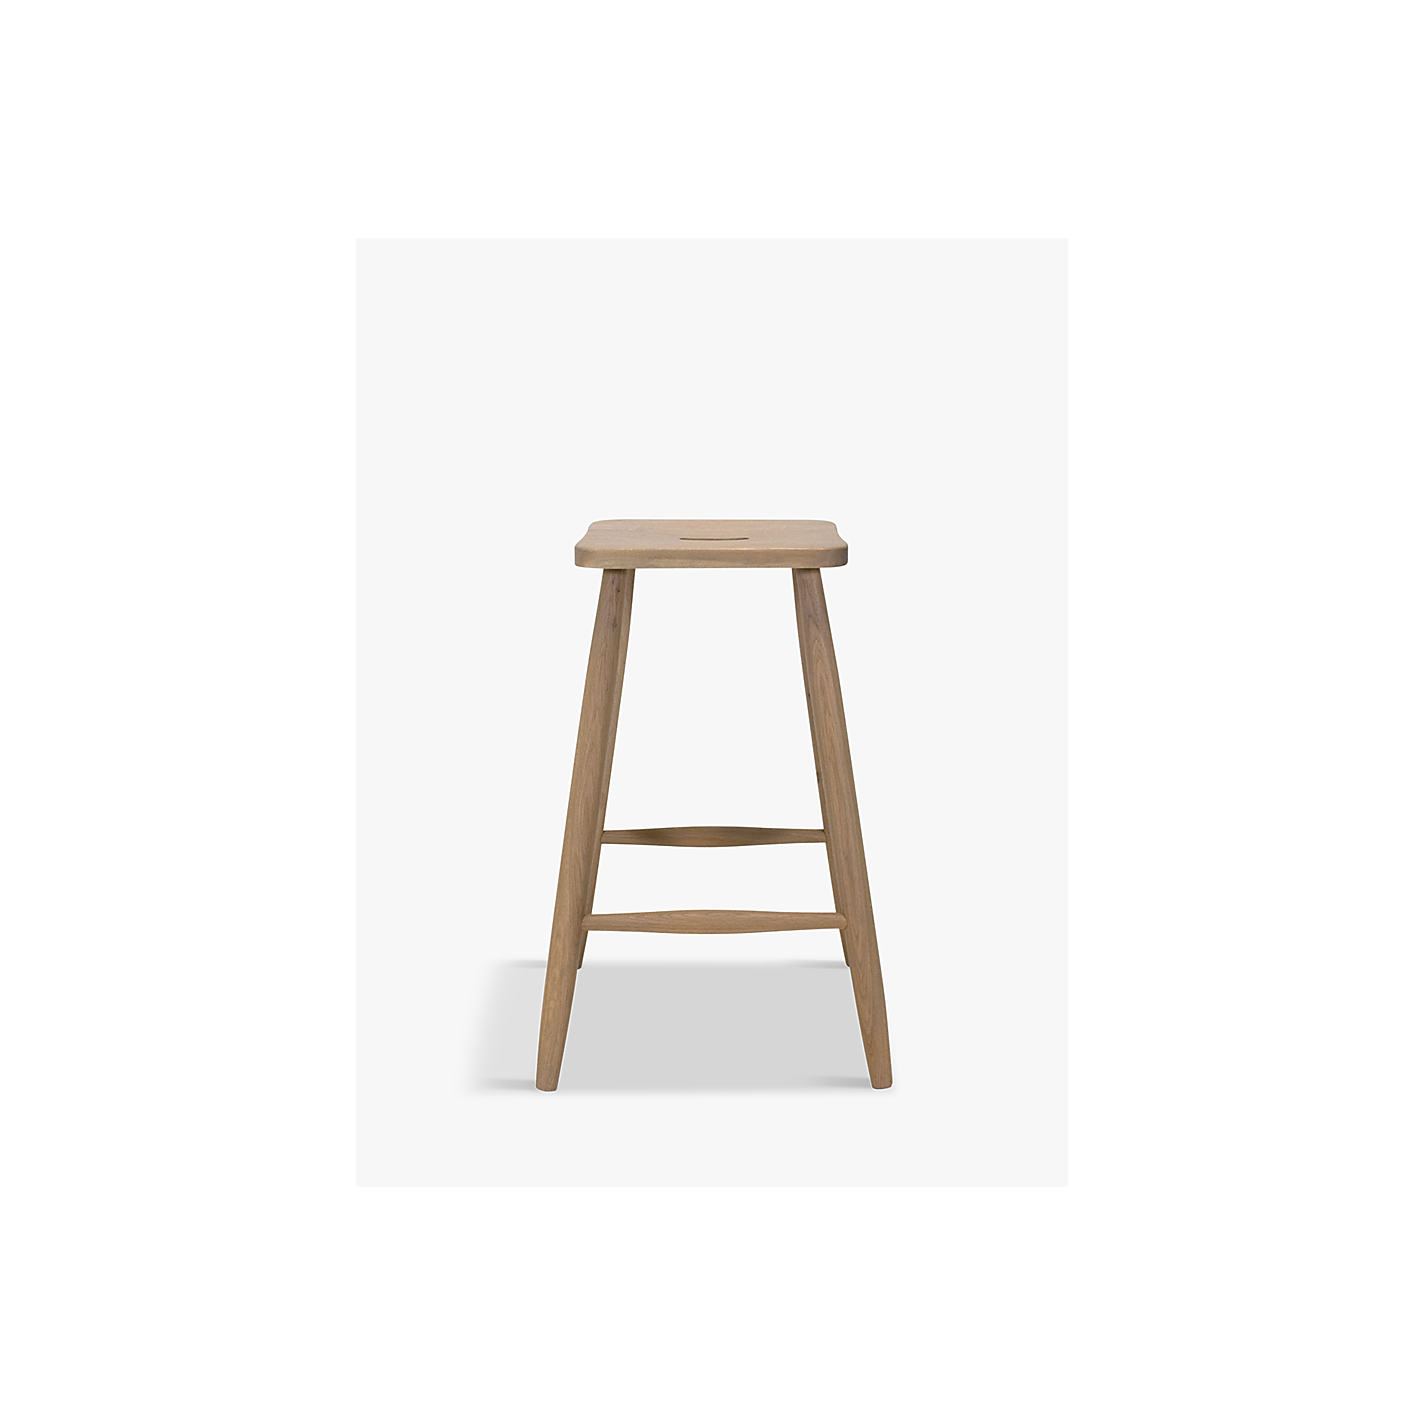 ... Buy John Lewis Croft Collection Kyla Bar Stool Natural Online at johnlewis.com  sc 1 st  John Lewis & Buy John Lewis Croft Collection Kyla Bar Stool Natural | John Lewis islam-shia.org